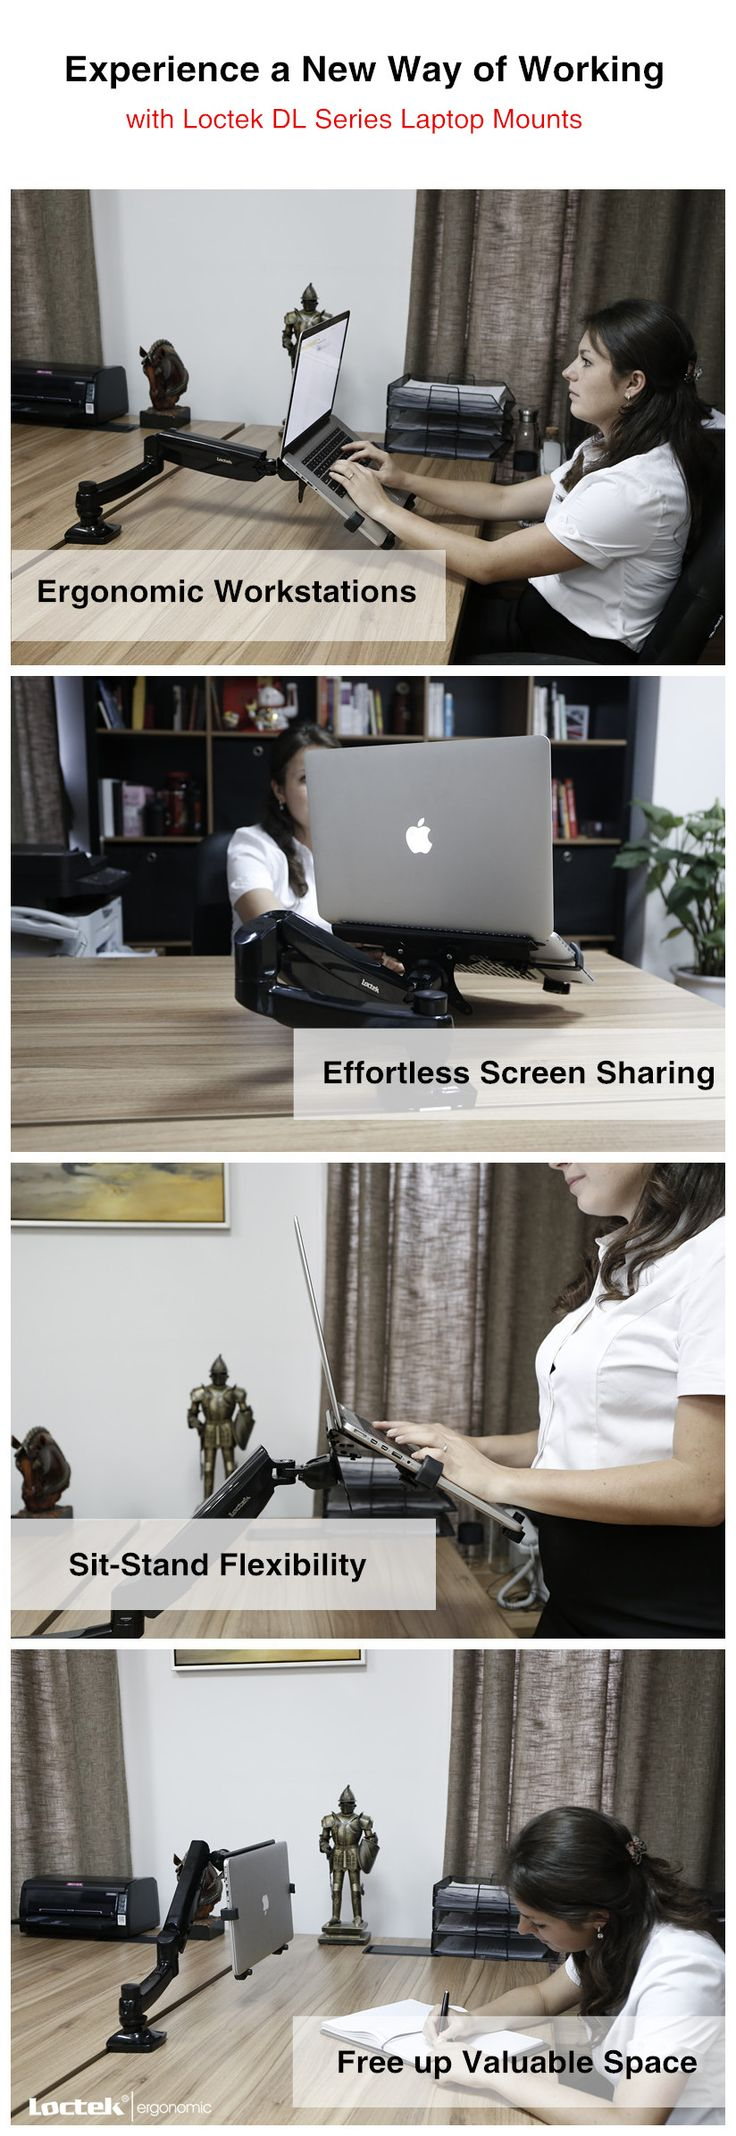 Description of workrite willow monitor arm willow is specifically - Experience A New Way Of Working With Loctek Dl Series Laptop Mount Our Allows You To Create Ergonomic Workstations Effortlessly Share Screens